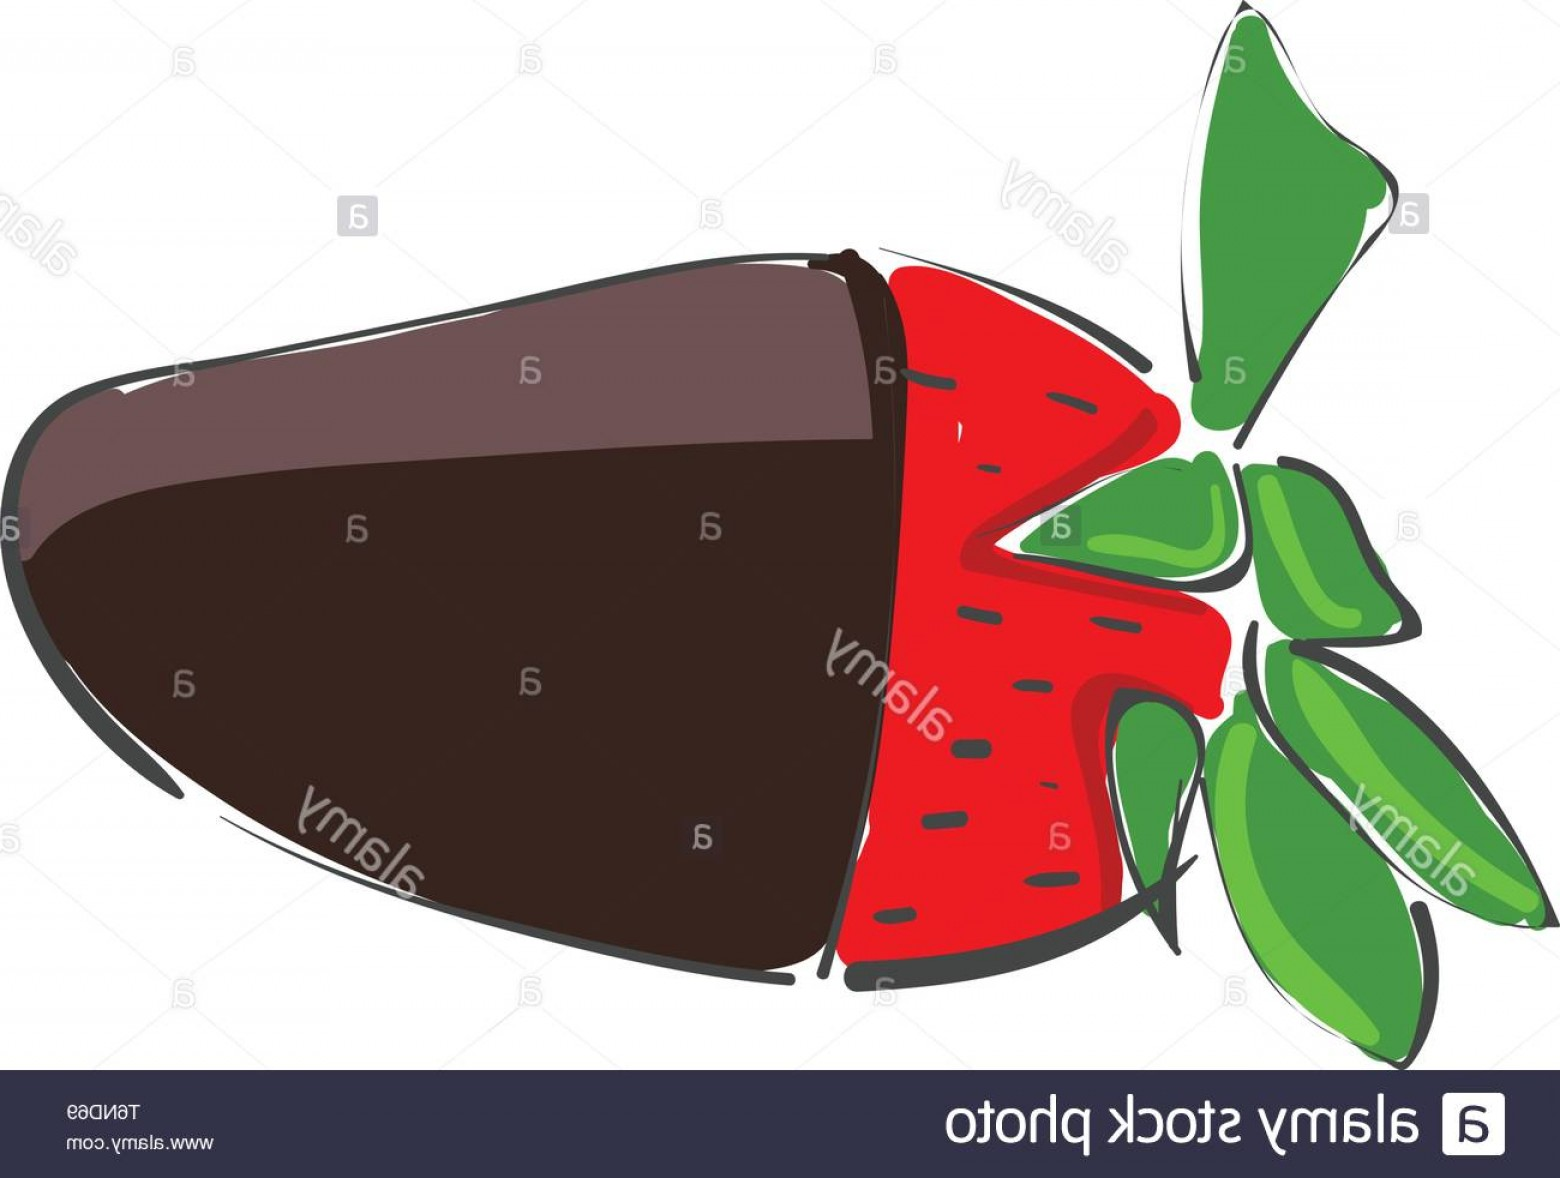 Chocolate Vector Plant: A Fresh Strawberry Which Is Dipped In Dark Chocolate Vector Color Drawing Or Illustration Image